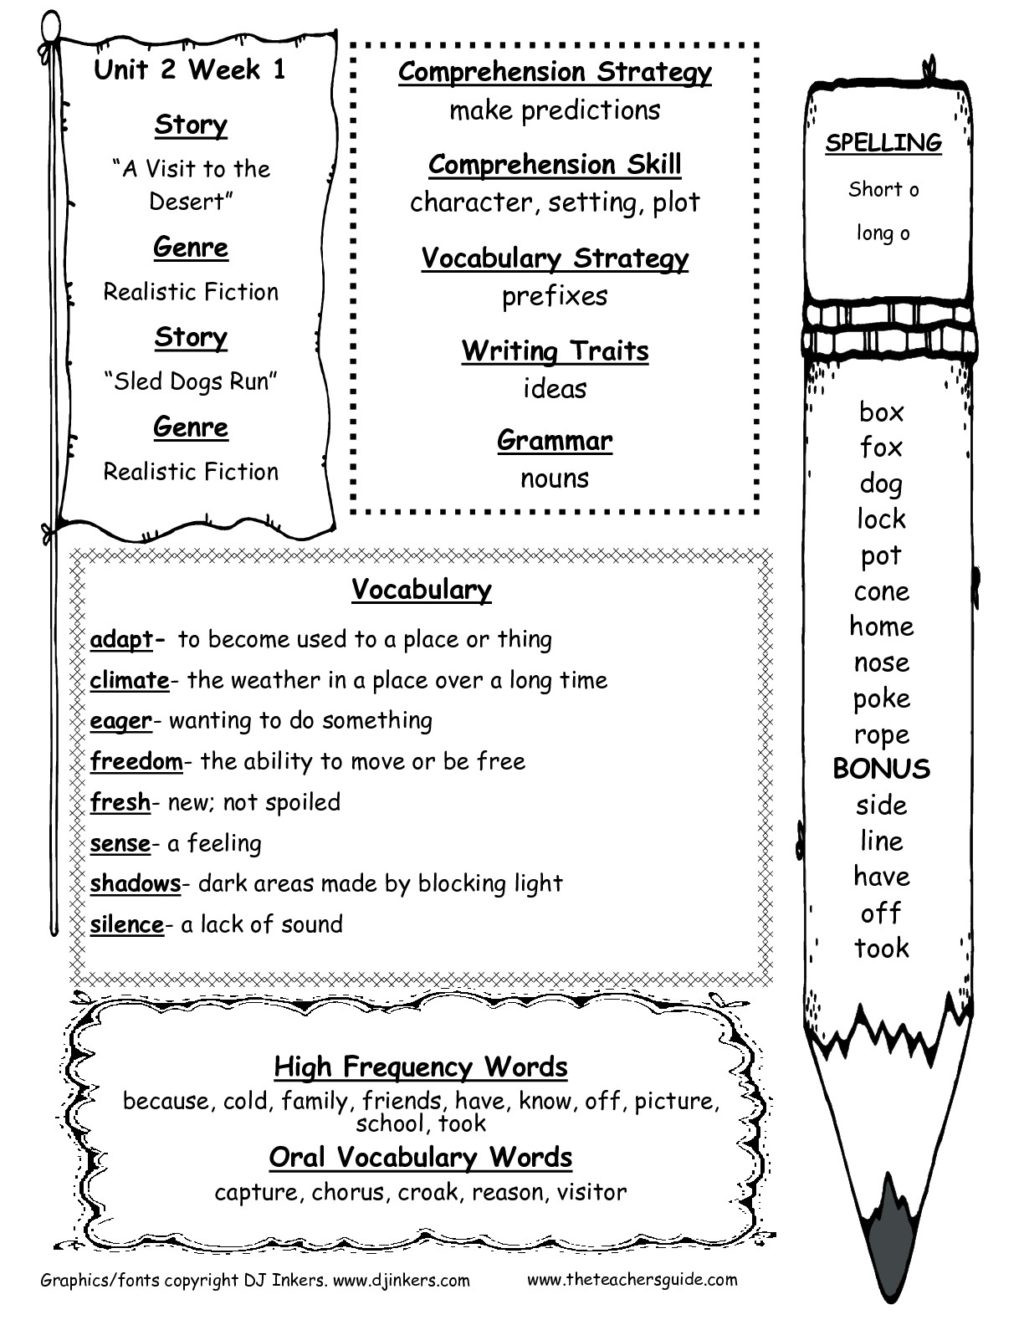 Long O Worksheets 2nd Grade Worksheet Free Readings 2nd Grade Printable Responding to